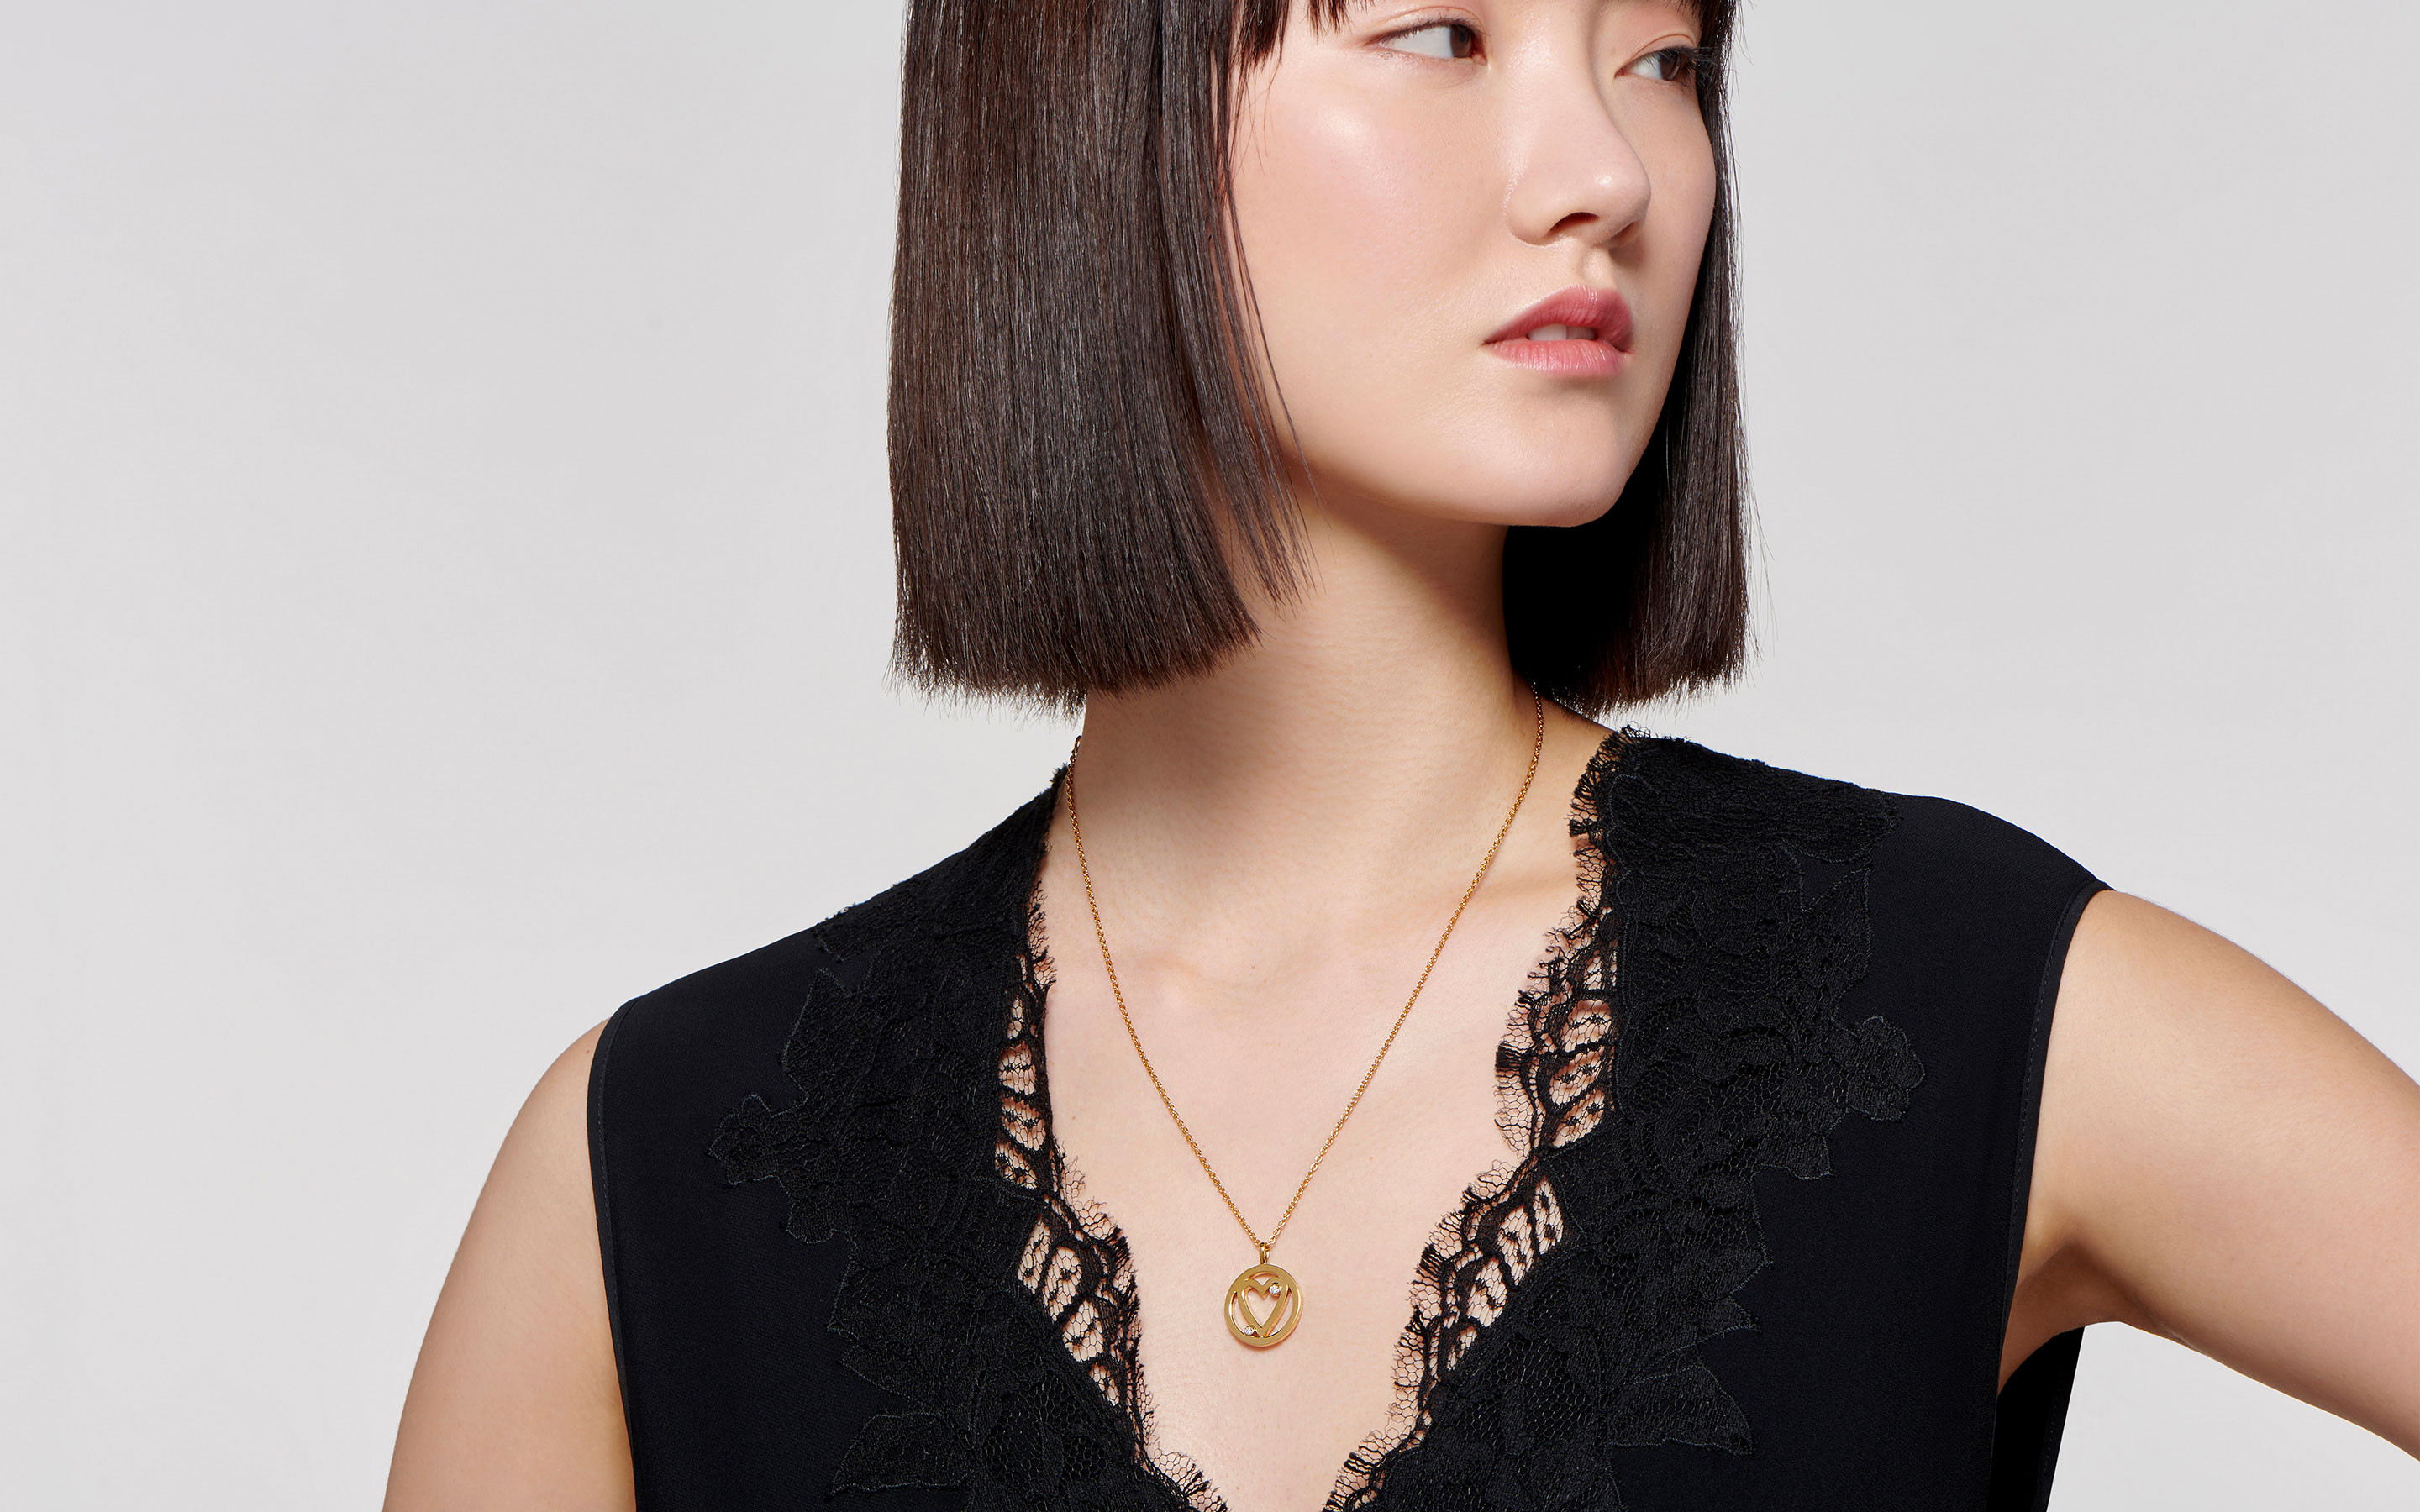 22 karat gold necklace with open heart pendant on fabulous East Asian model